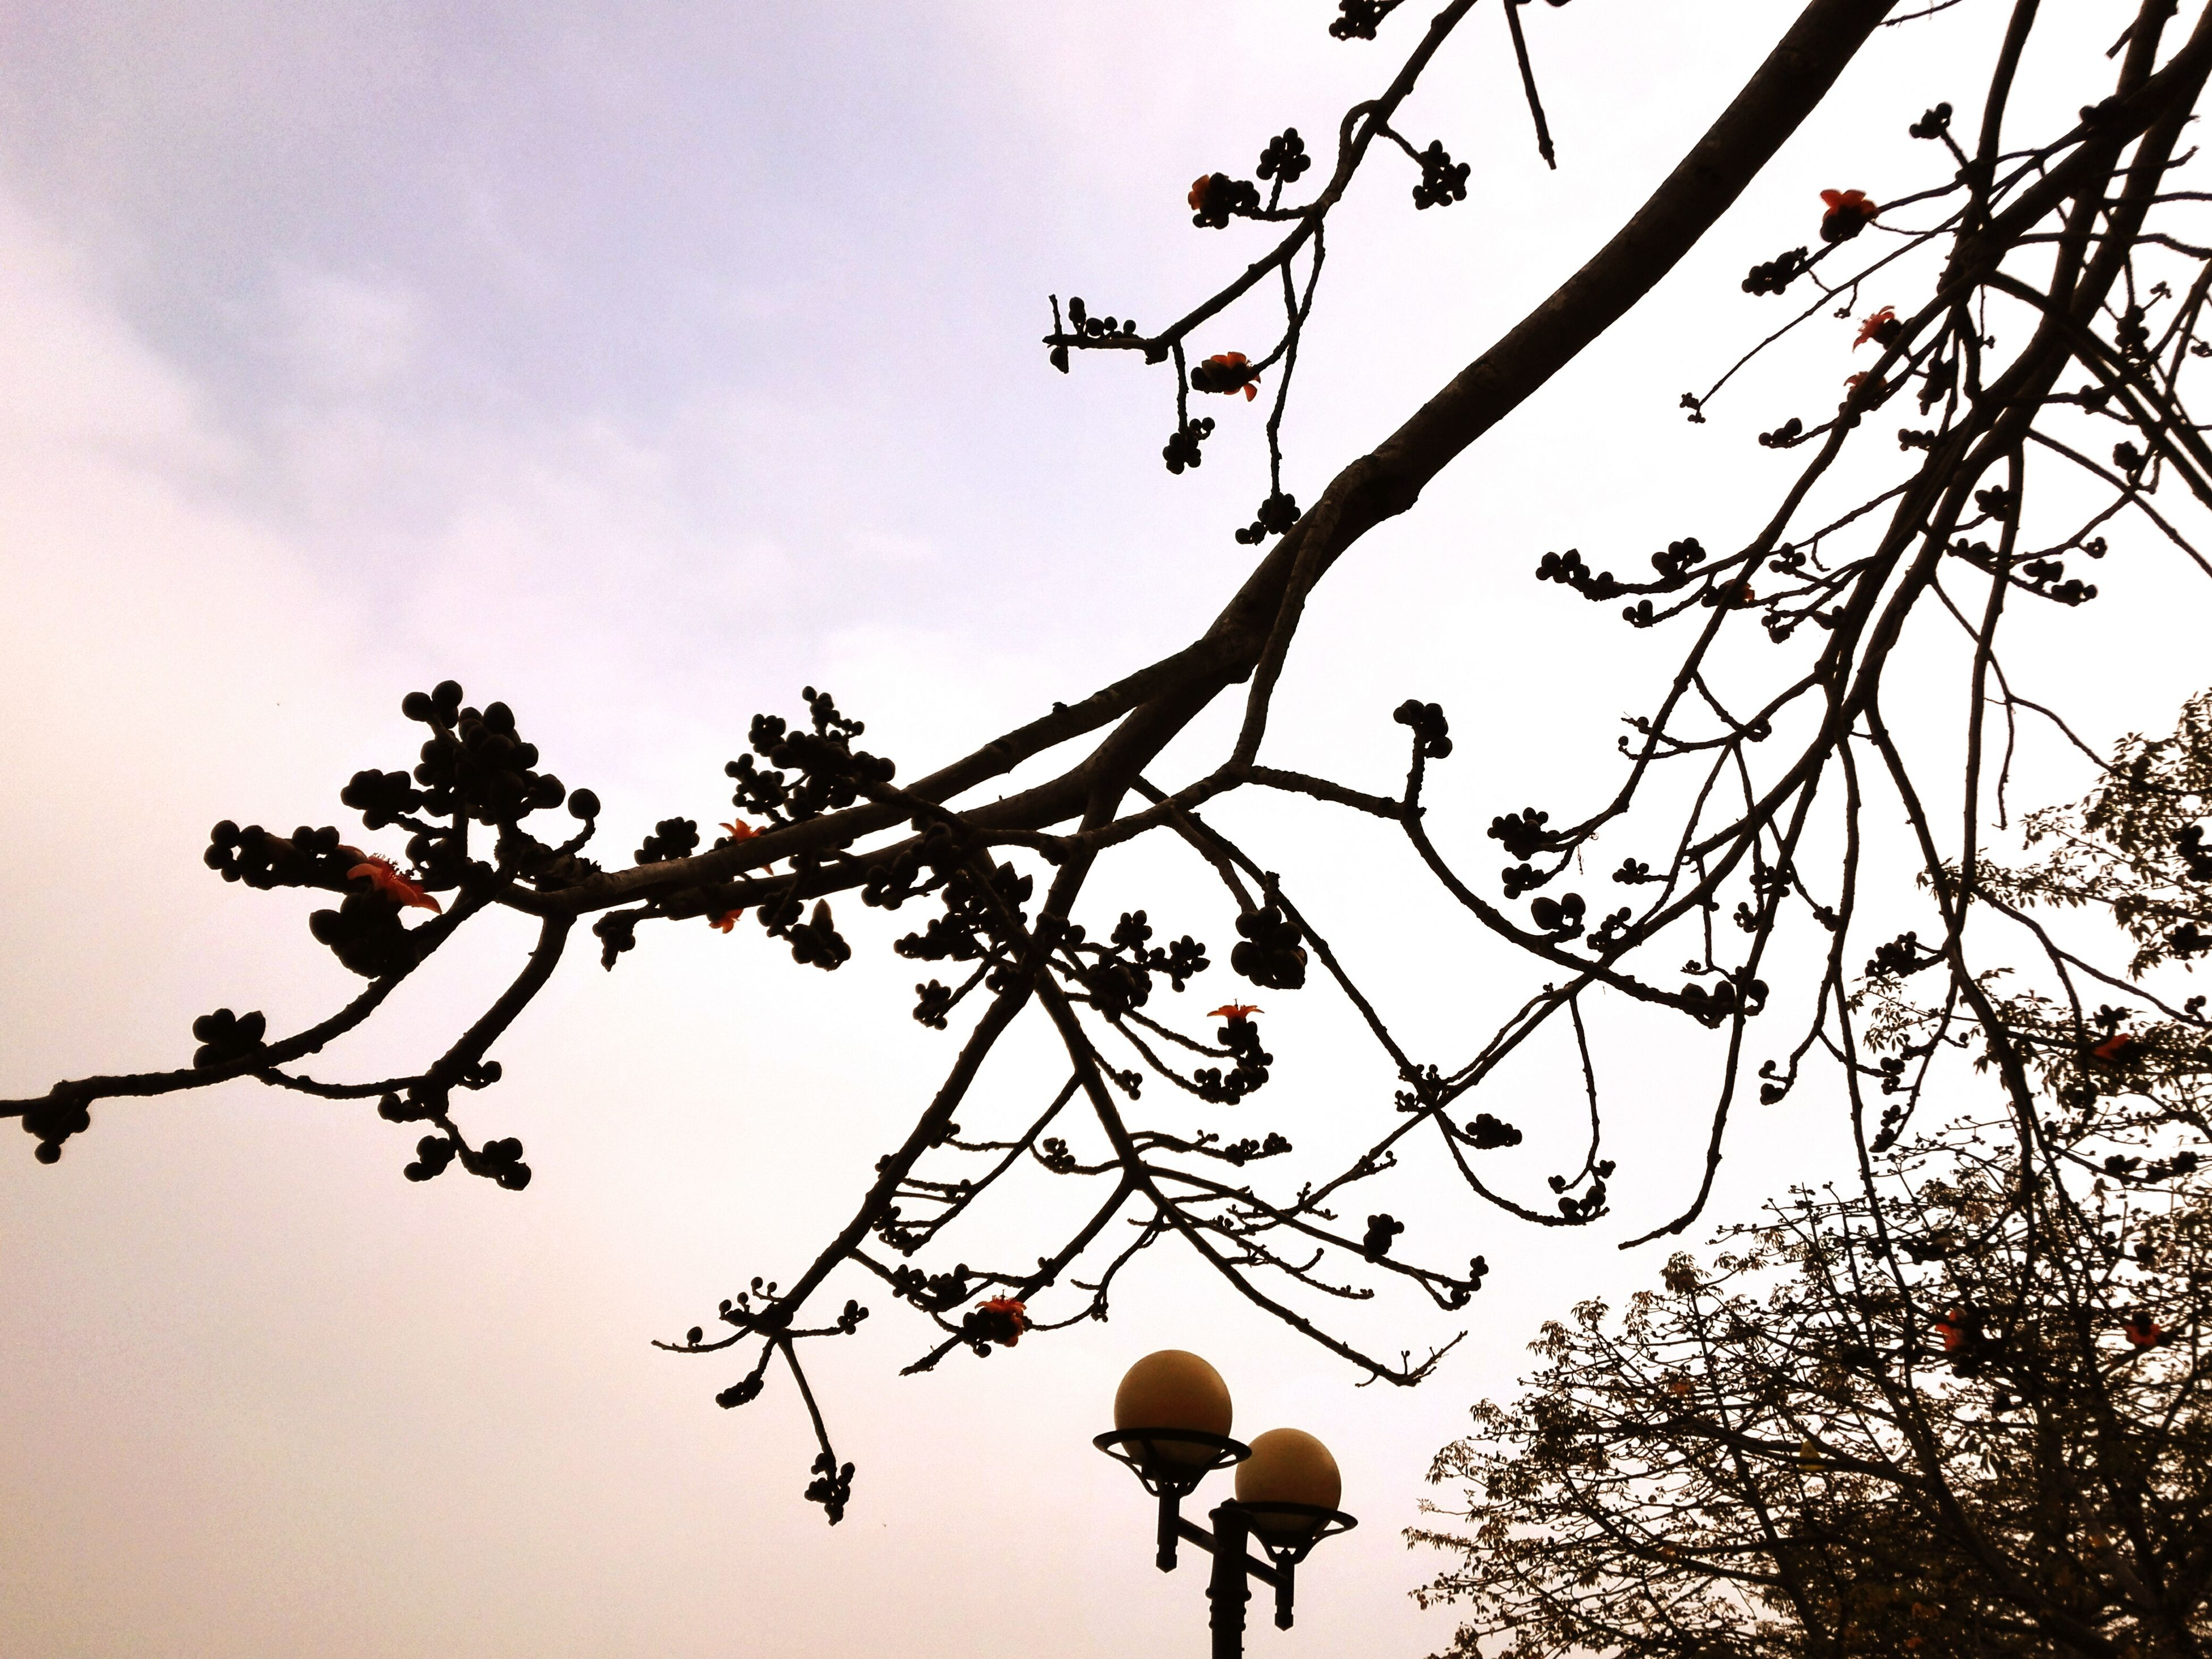 low angle view, branch, tree, growth, sky, silhouette, clear sky, nature, beauty in nature, flower, twig, freshness, outdoors, leaf, high section, bare tree, no people, day, tranquility, blue